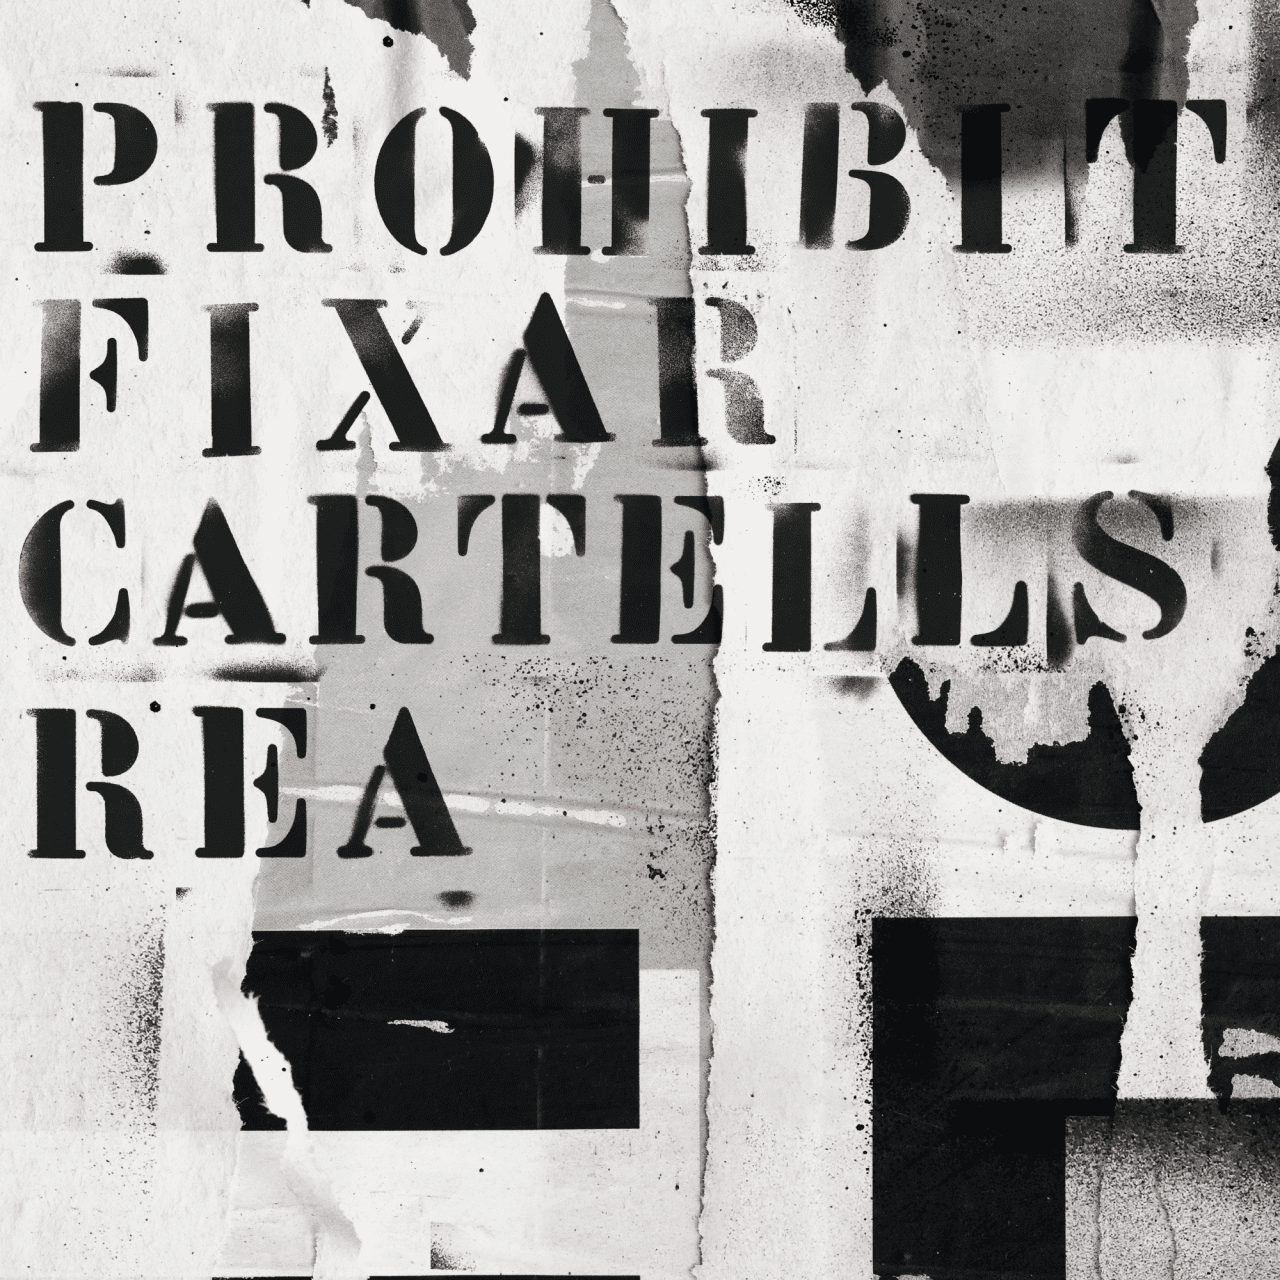 """Prohibit fixar cartells. REA"""